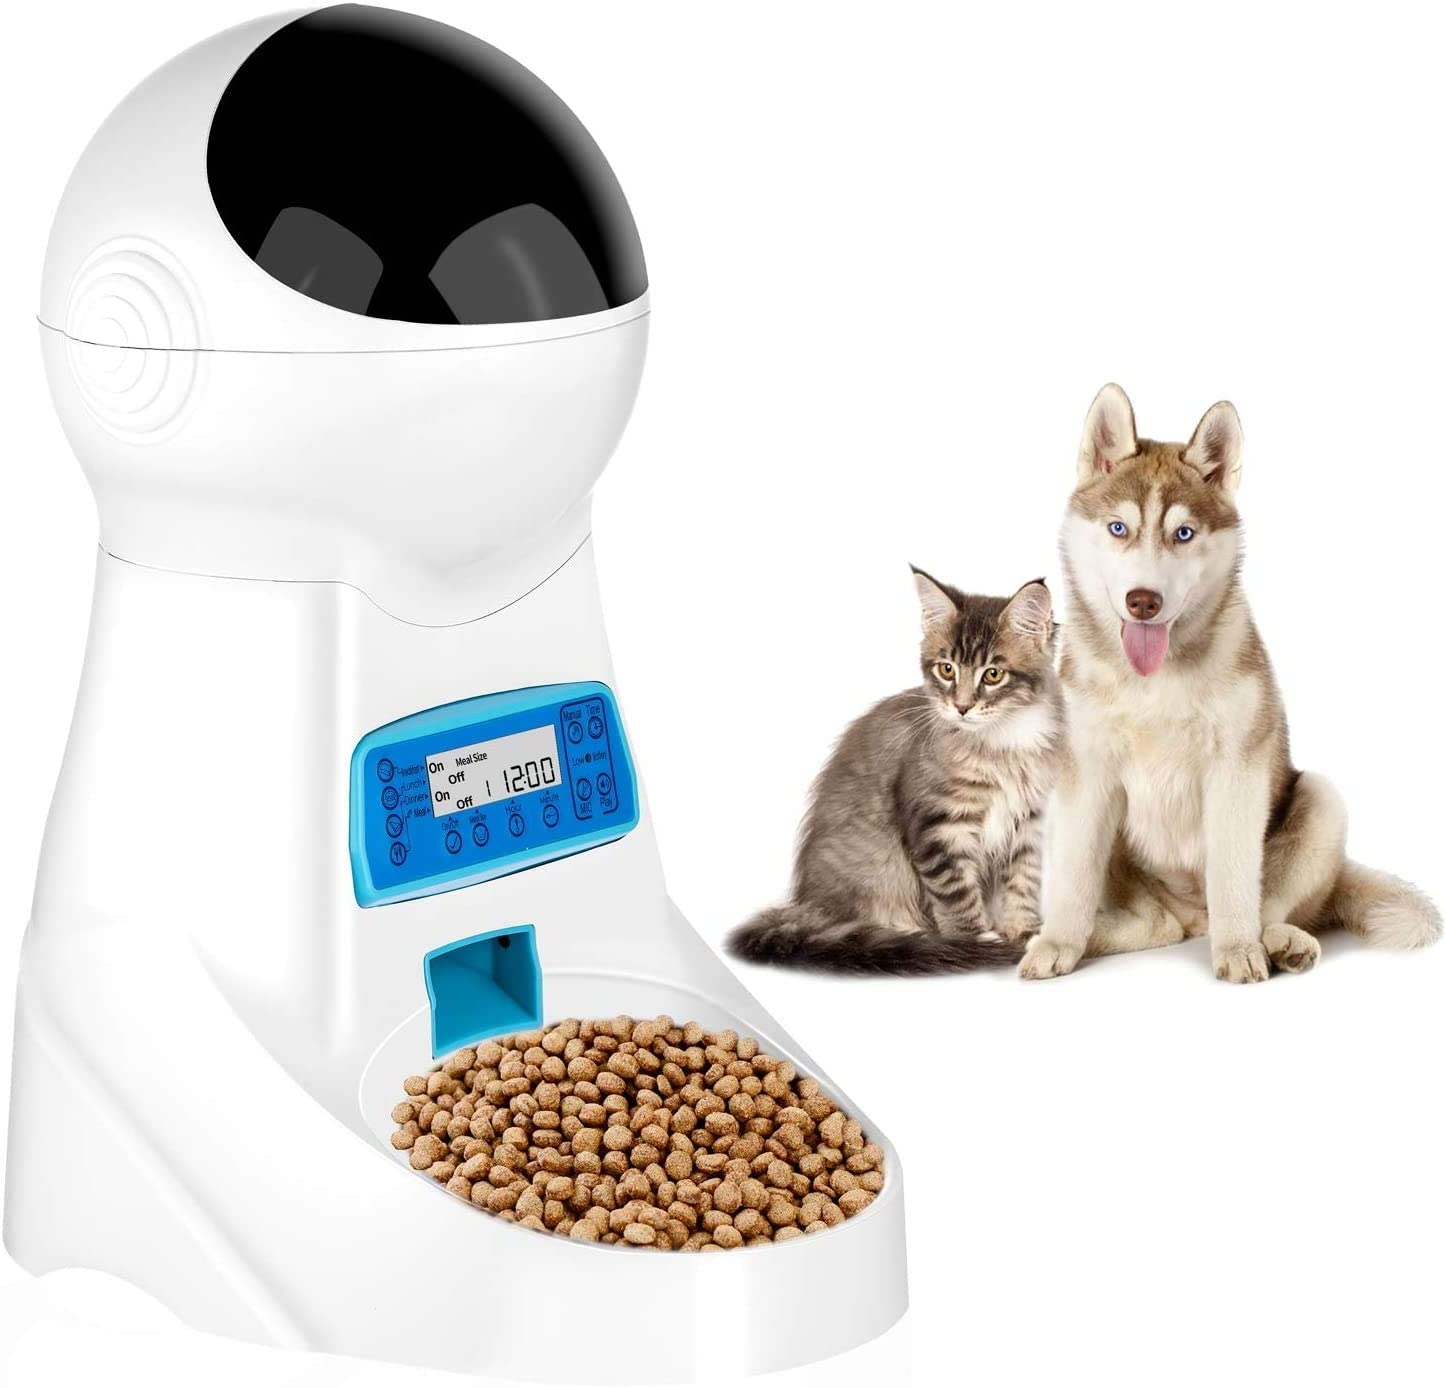 Automatic Cat Feeder Pet Dog Food Dispenser Feeder for Small Medium Large Cat Dog-4 Meal Timer Programmable Voice Recorder Portion Control